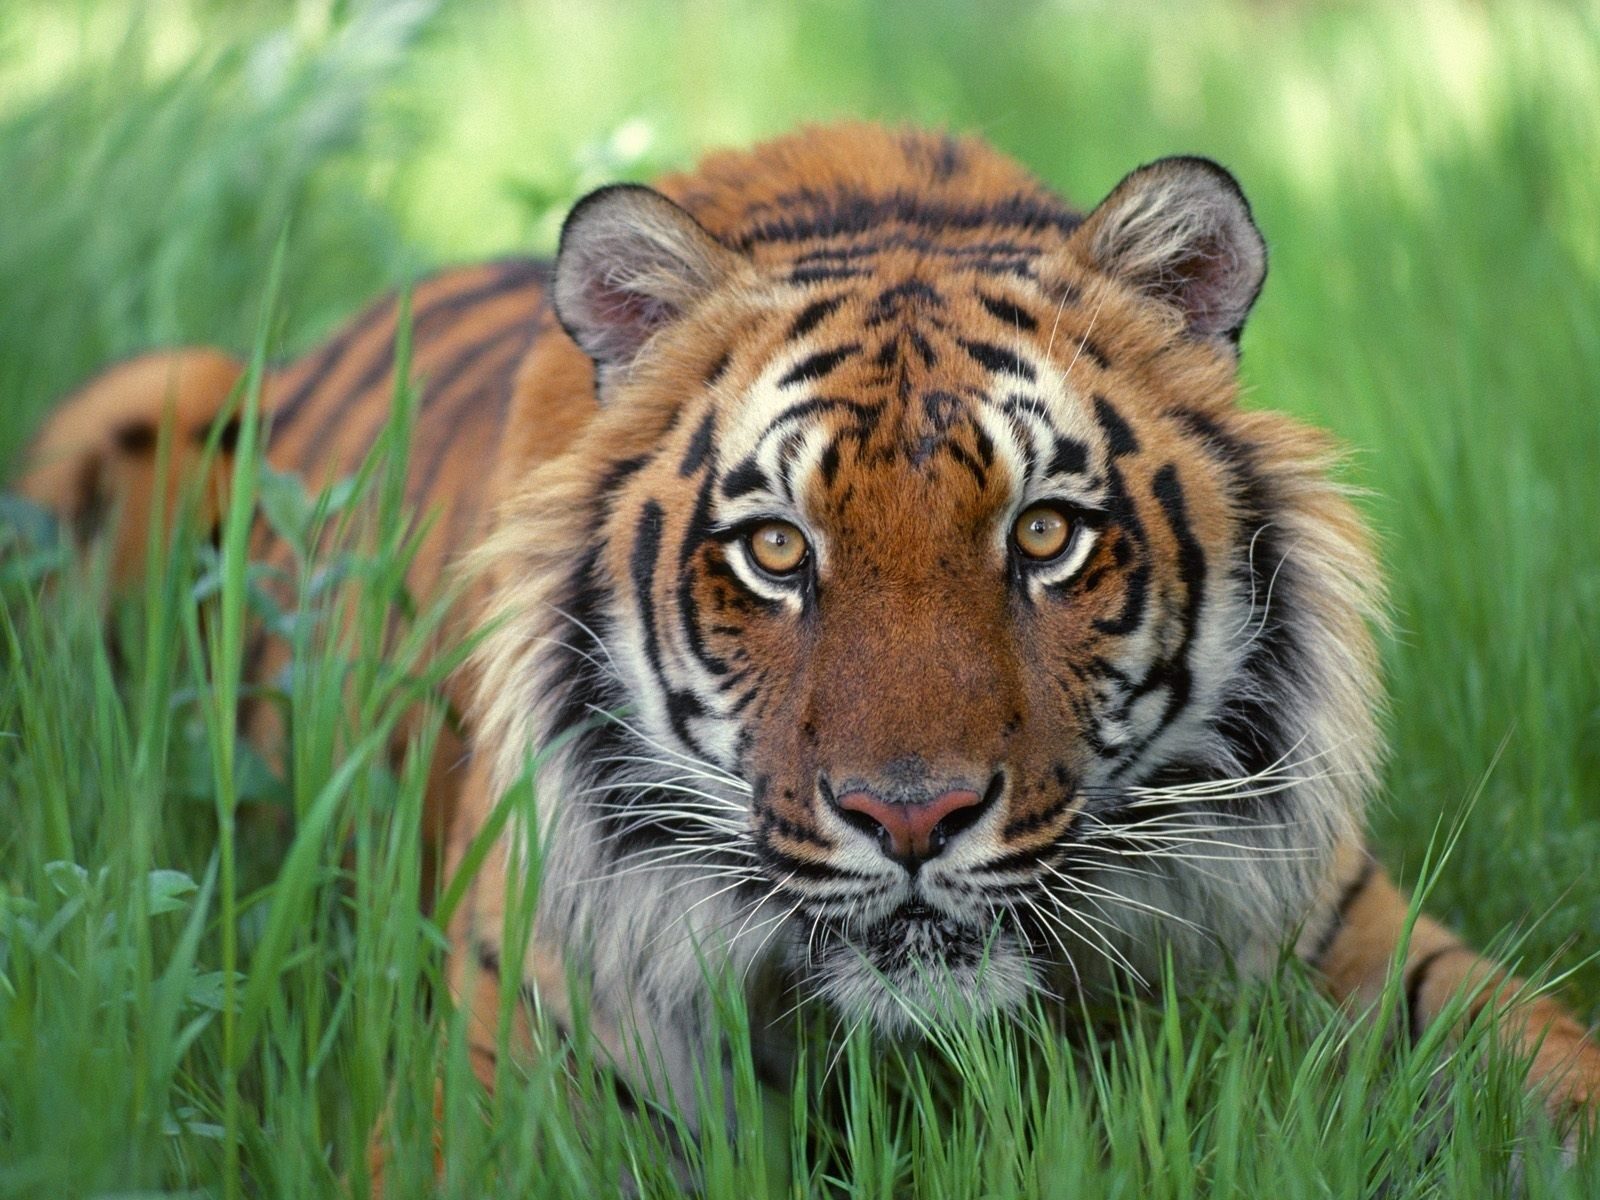 1600x1200 high resolution wallpapers widescreen tiger | likeagod